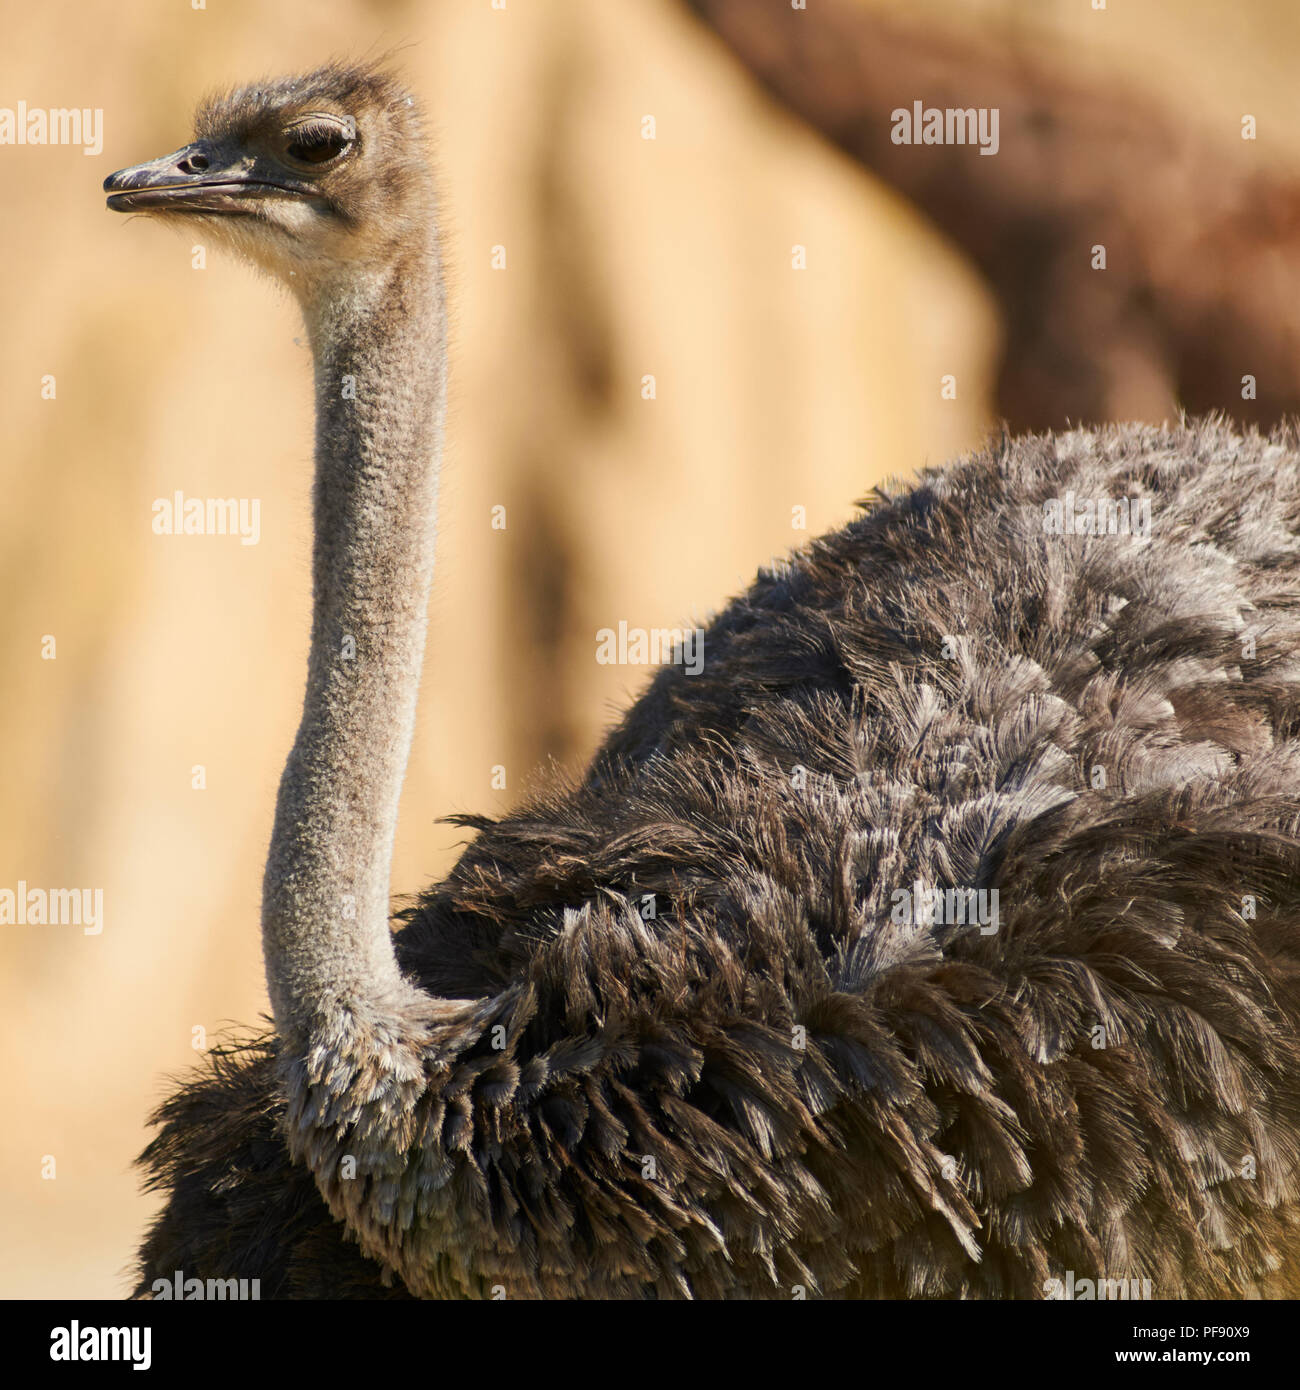 An emu at the Melbourne zoo. - Stock Image